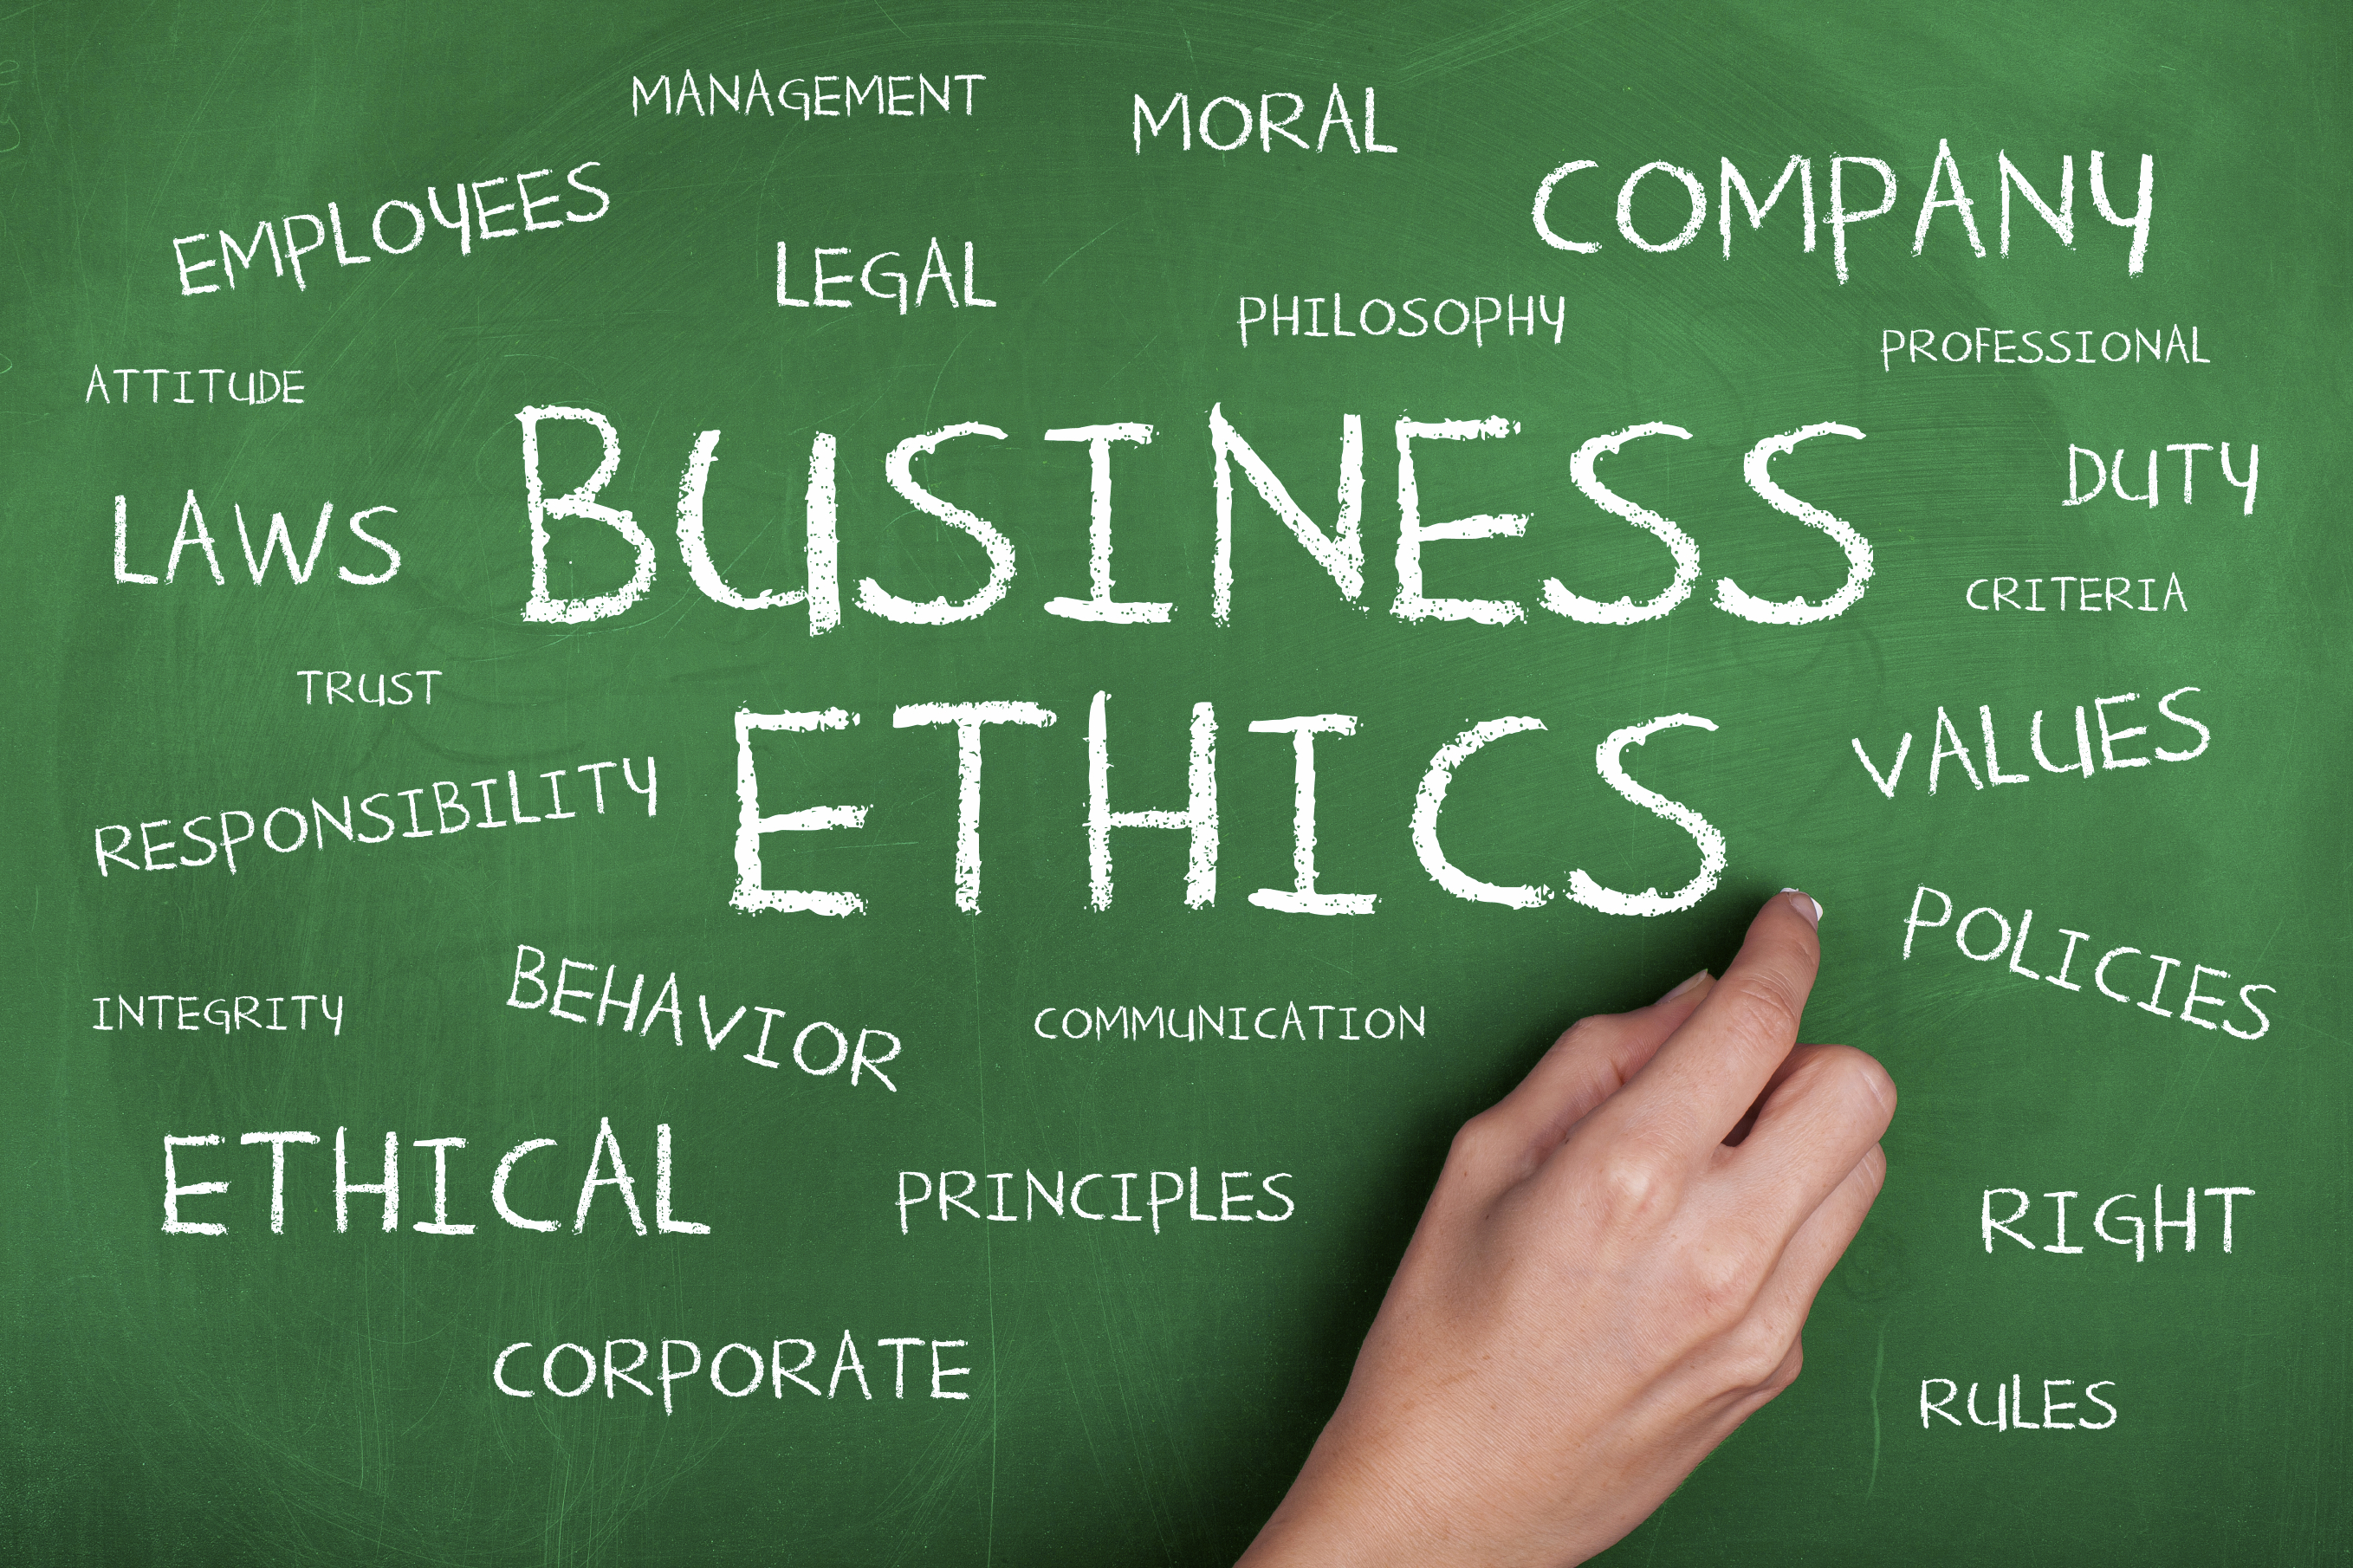 ethics moral business Chapter 1 ethics and business - download as powerpoint presentation (ppt /  pptx), pdf file (pdf), text file (txt) or view presentation slides online.